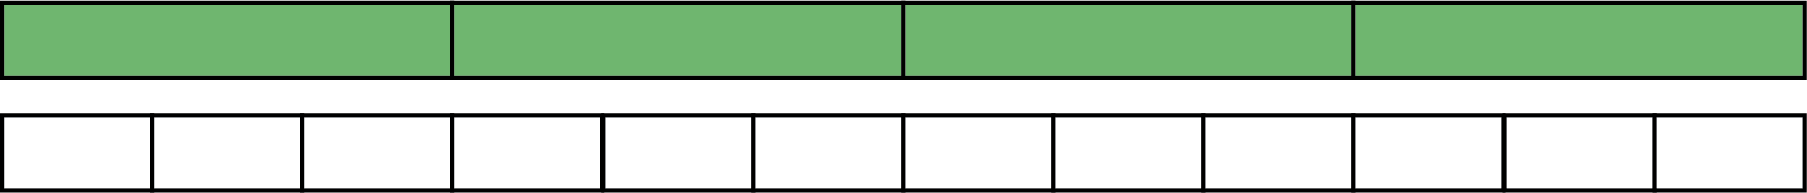 A pair of tape diagrams for one quantity. The top tape diagram has 4 equal parts and the bottom tape diagram has 12 equal parts.